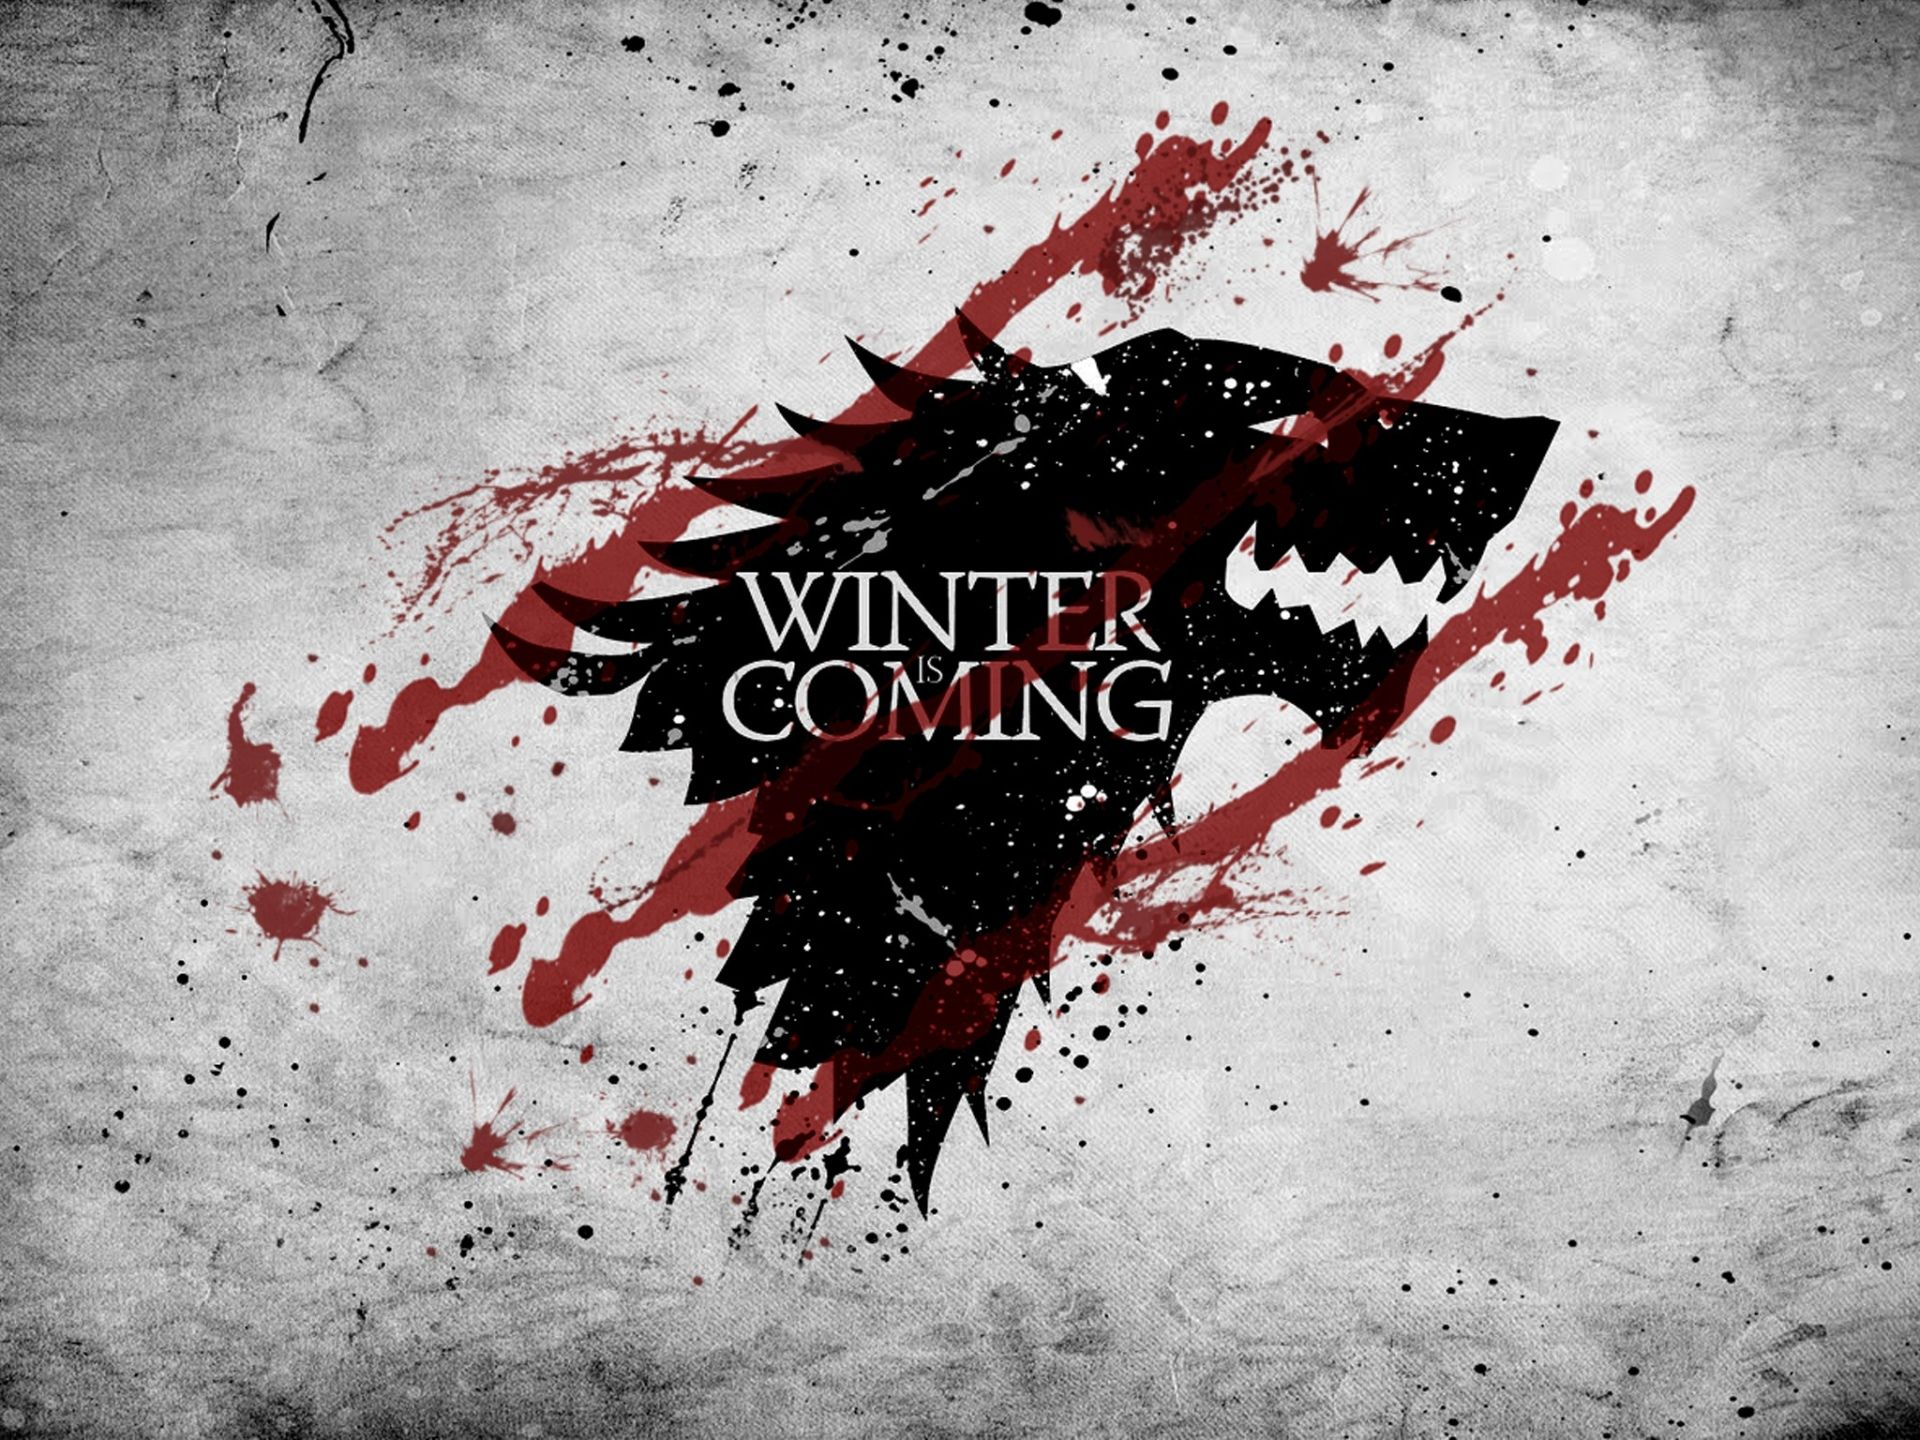 TV Show Game Of Thrones Wallpaper Winter is coming